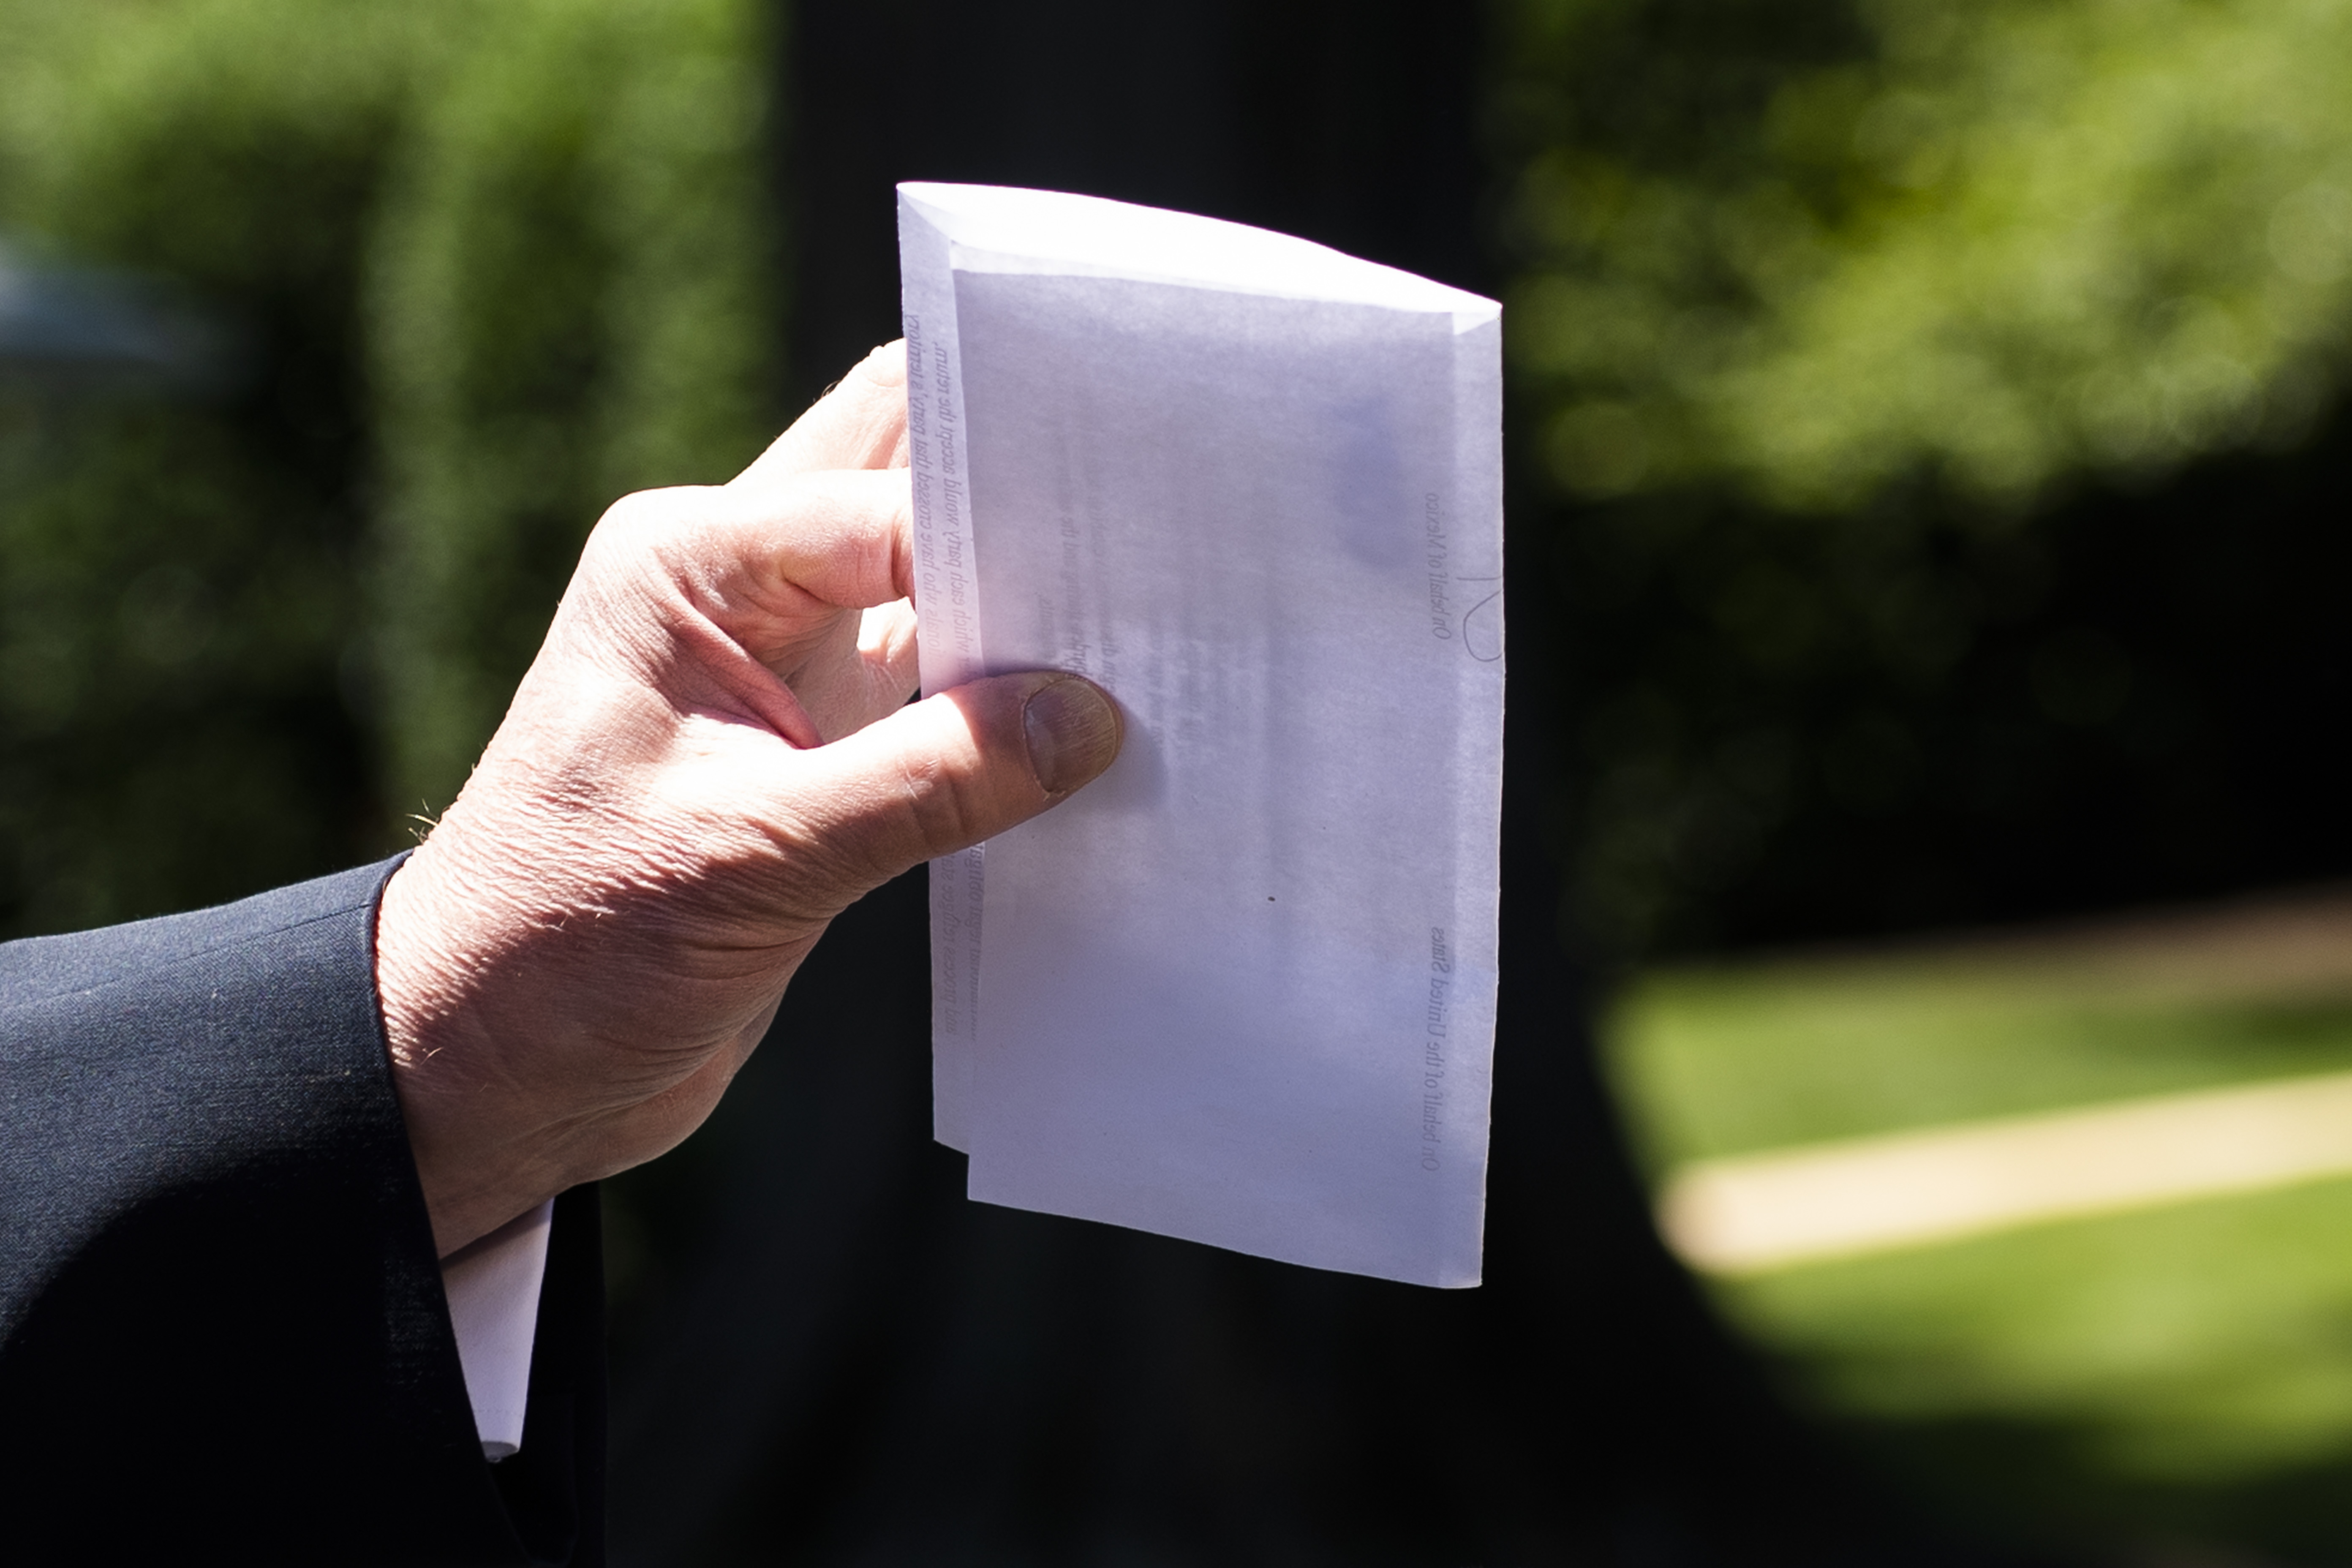 US President Donald Trump holds piece of paper saying its his deal with Mexico as he speaks with reporters at the White House, in Washington, DC, on June 11, 2019. - Trump did not show the paper to reporters.